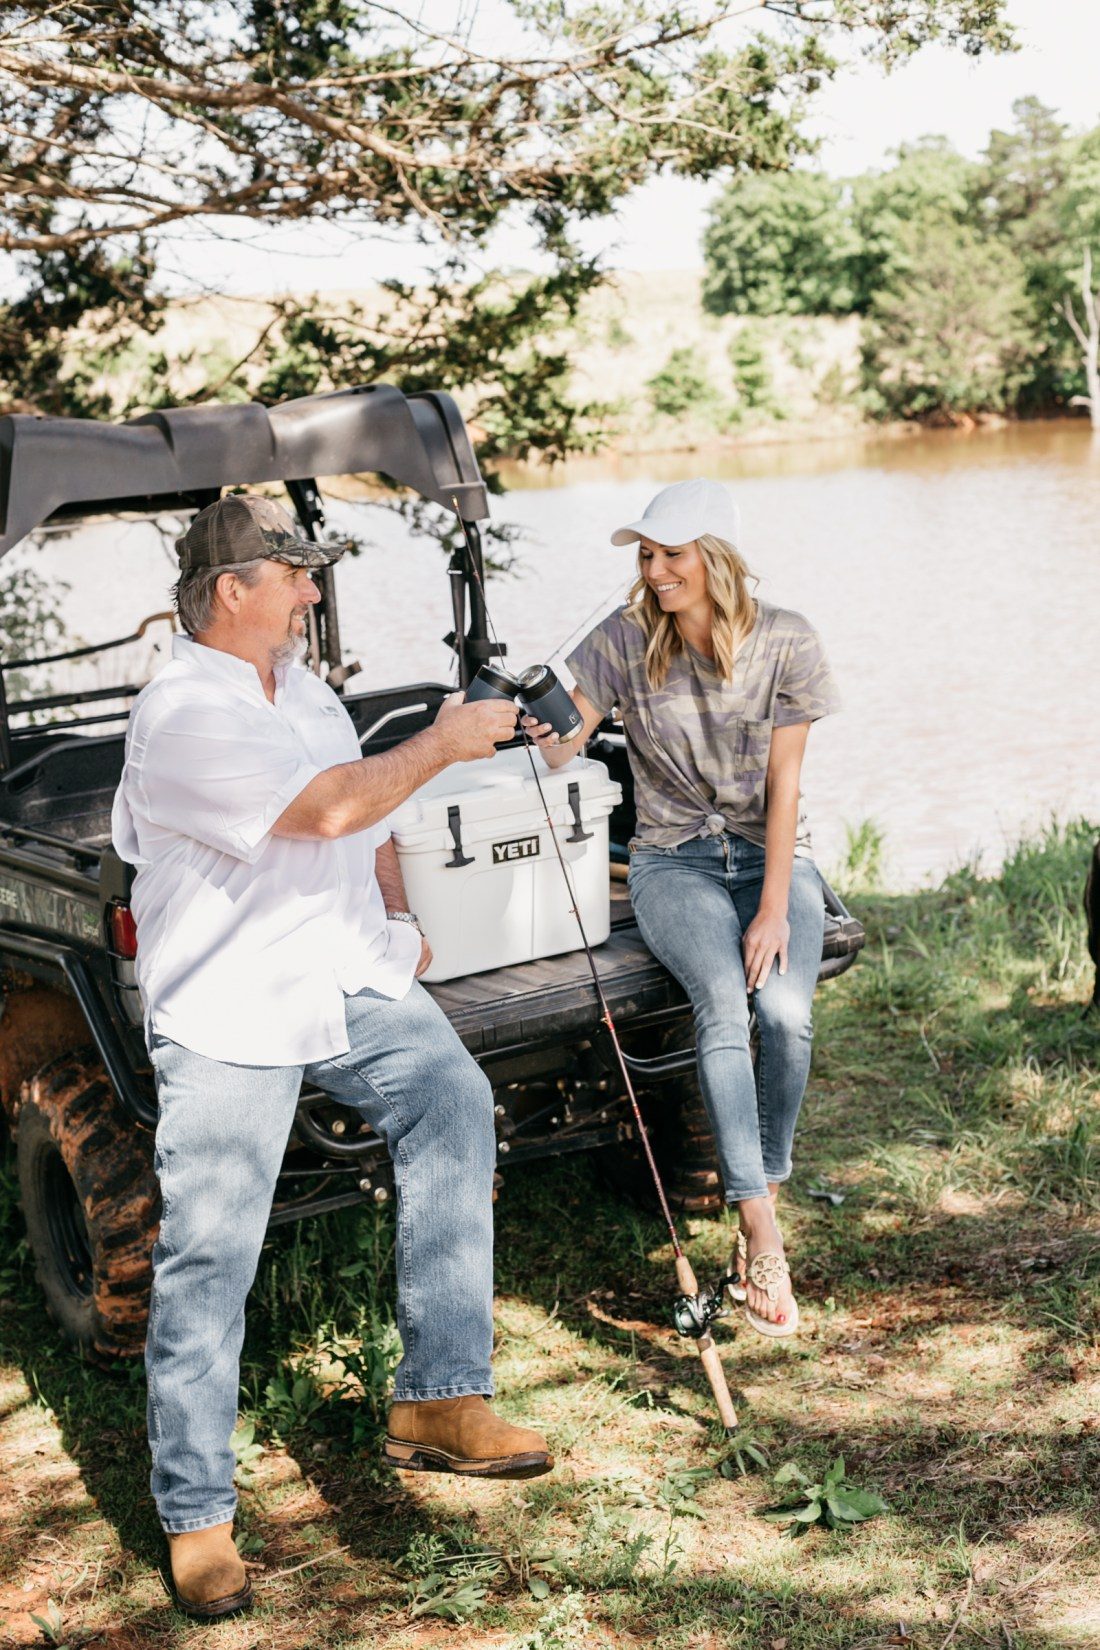 Brooke Burnett is sharing some FATHER'S DAY GIFT IDEAS